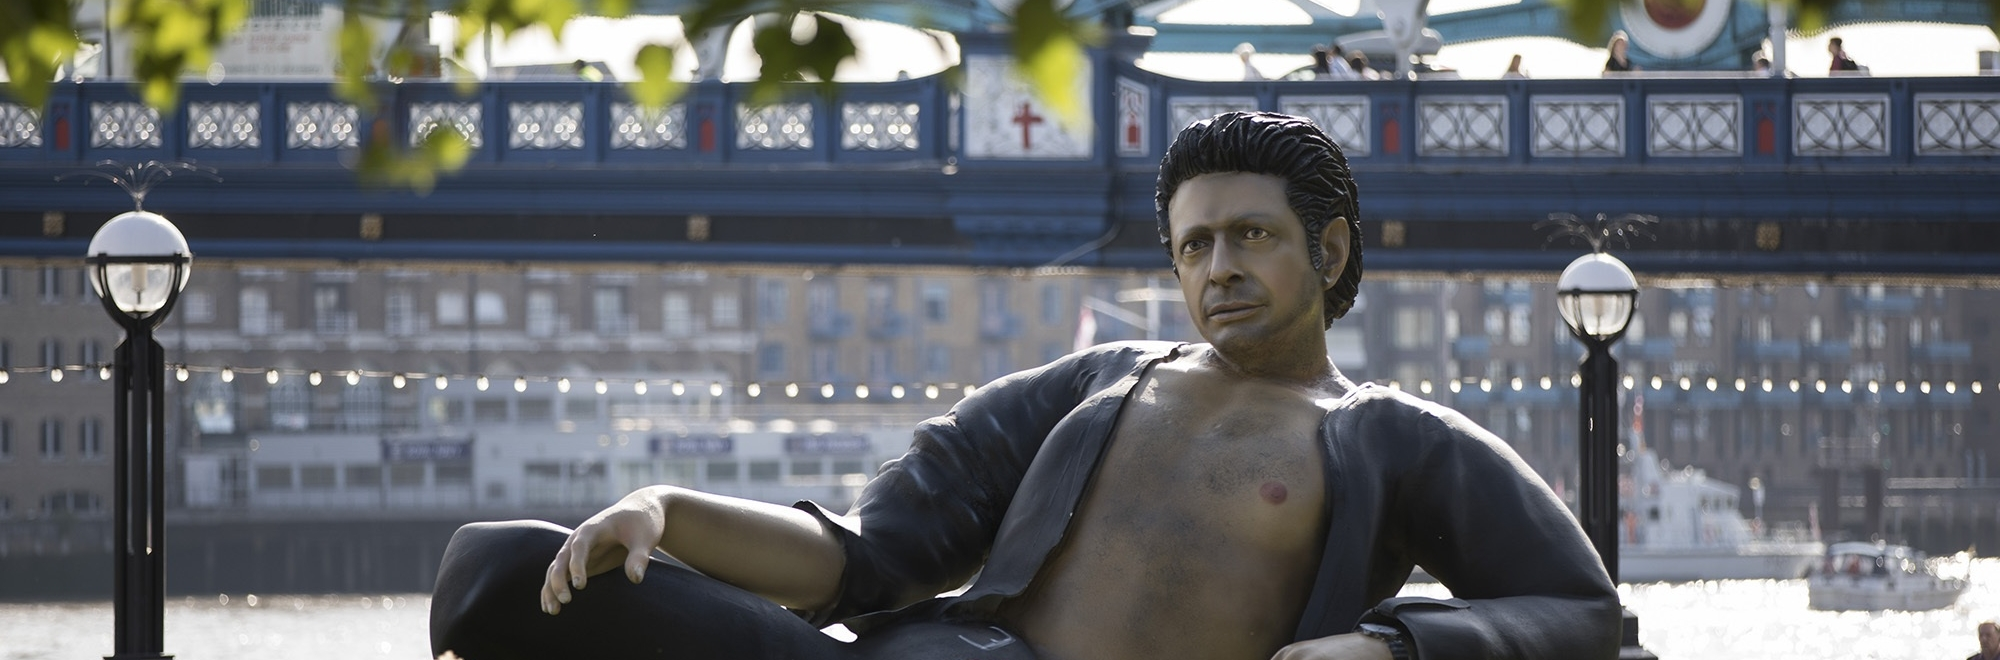 A giant statue of Jeff Goldblum next to Tower Bridge celebrates 25 years of Jurassic Park